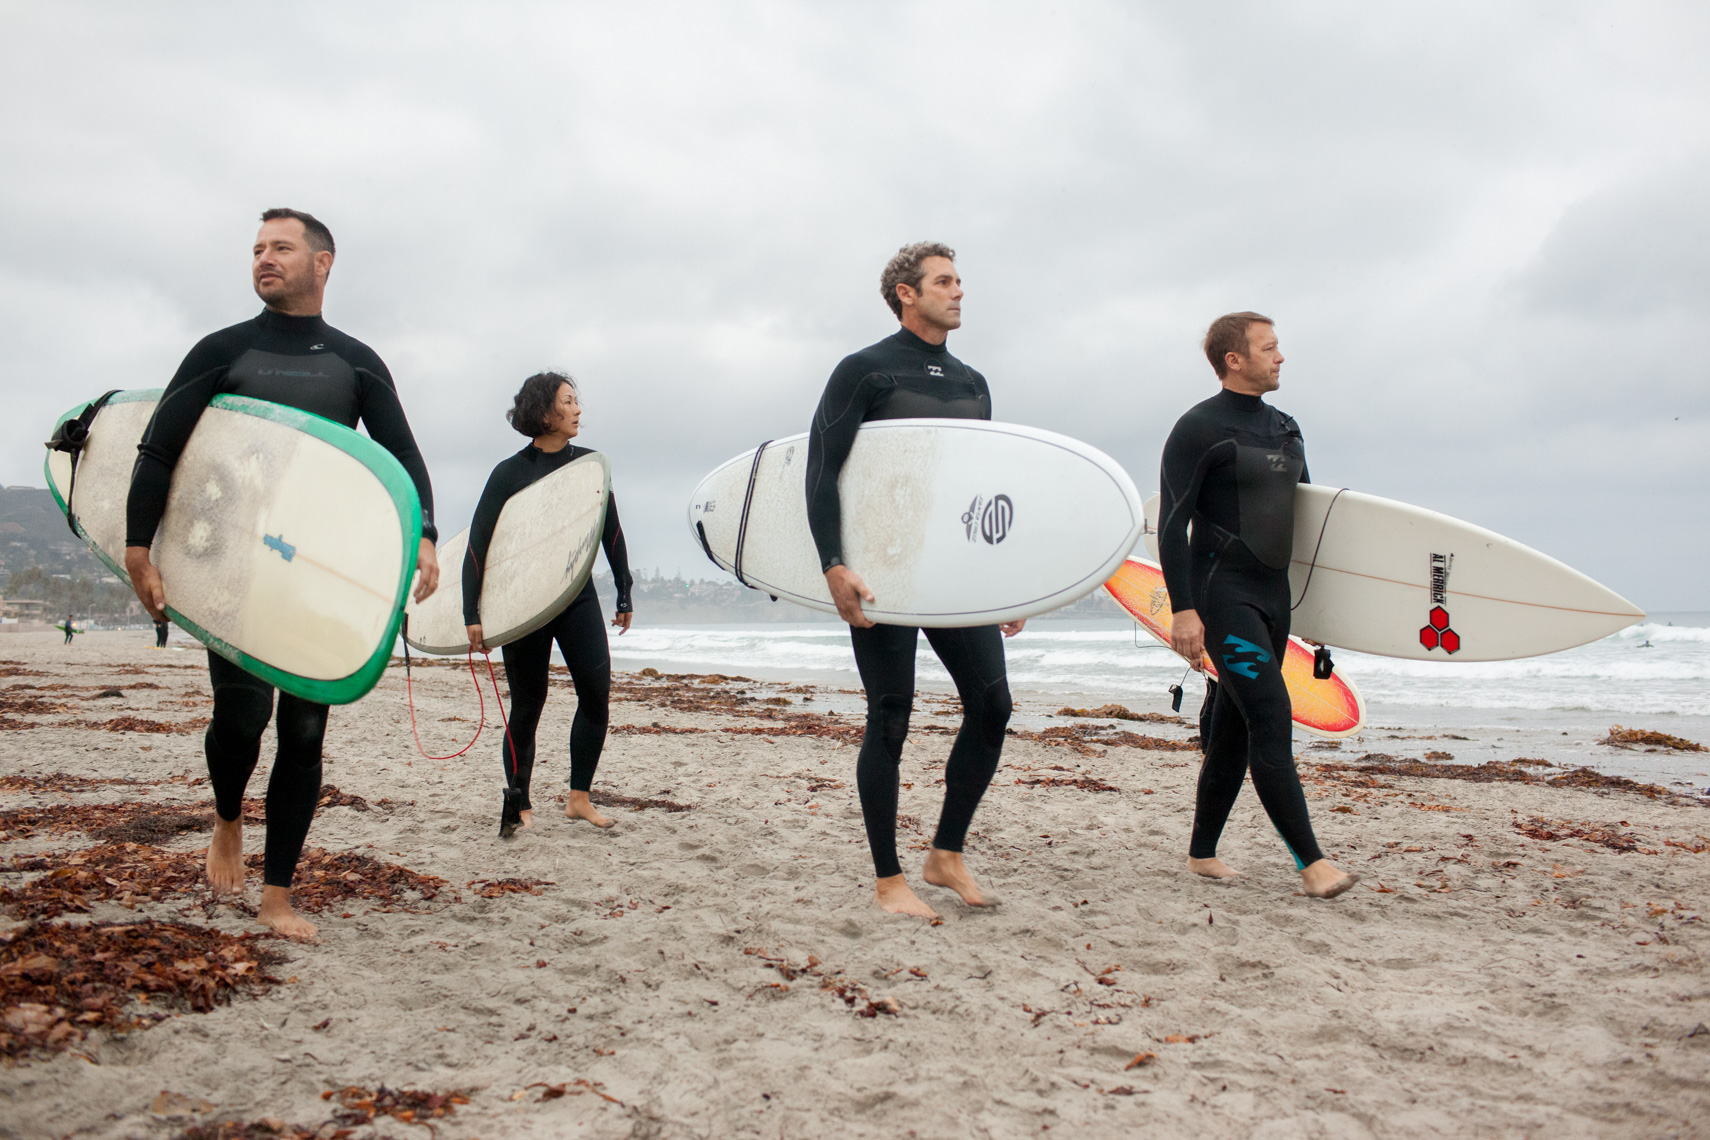 51-Active-Lifestyle-Doctors-Surfing